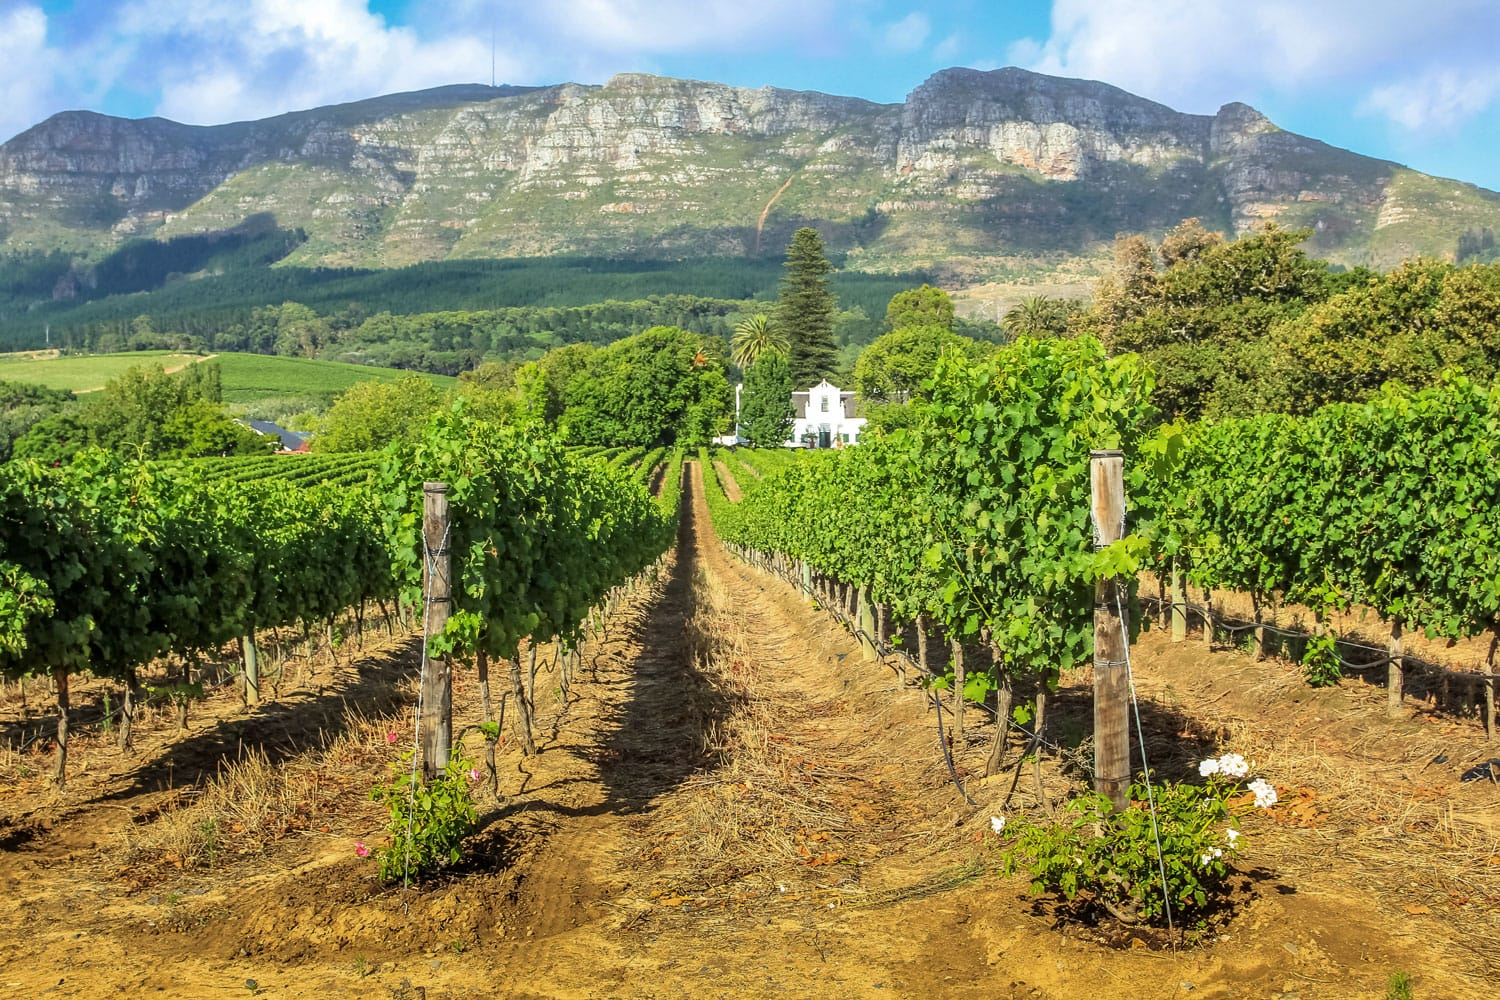 Rows of grapes in picturesque Stellenbosch wine region in South Africa with Thelema Mountain as a backdrop